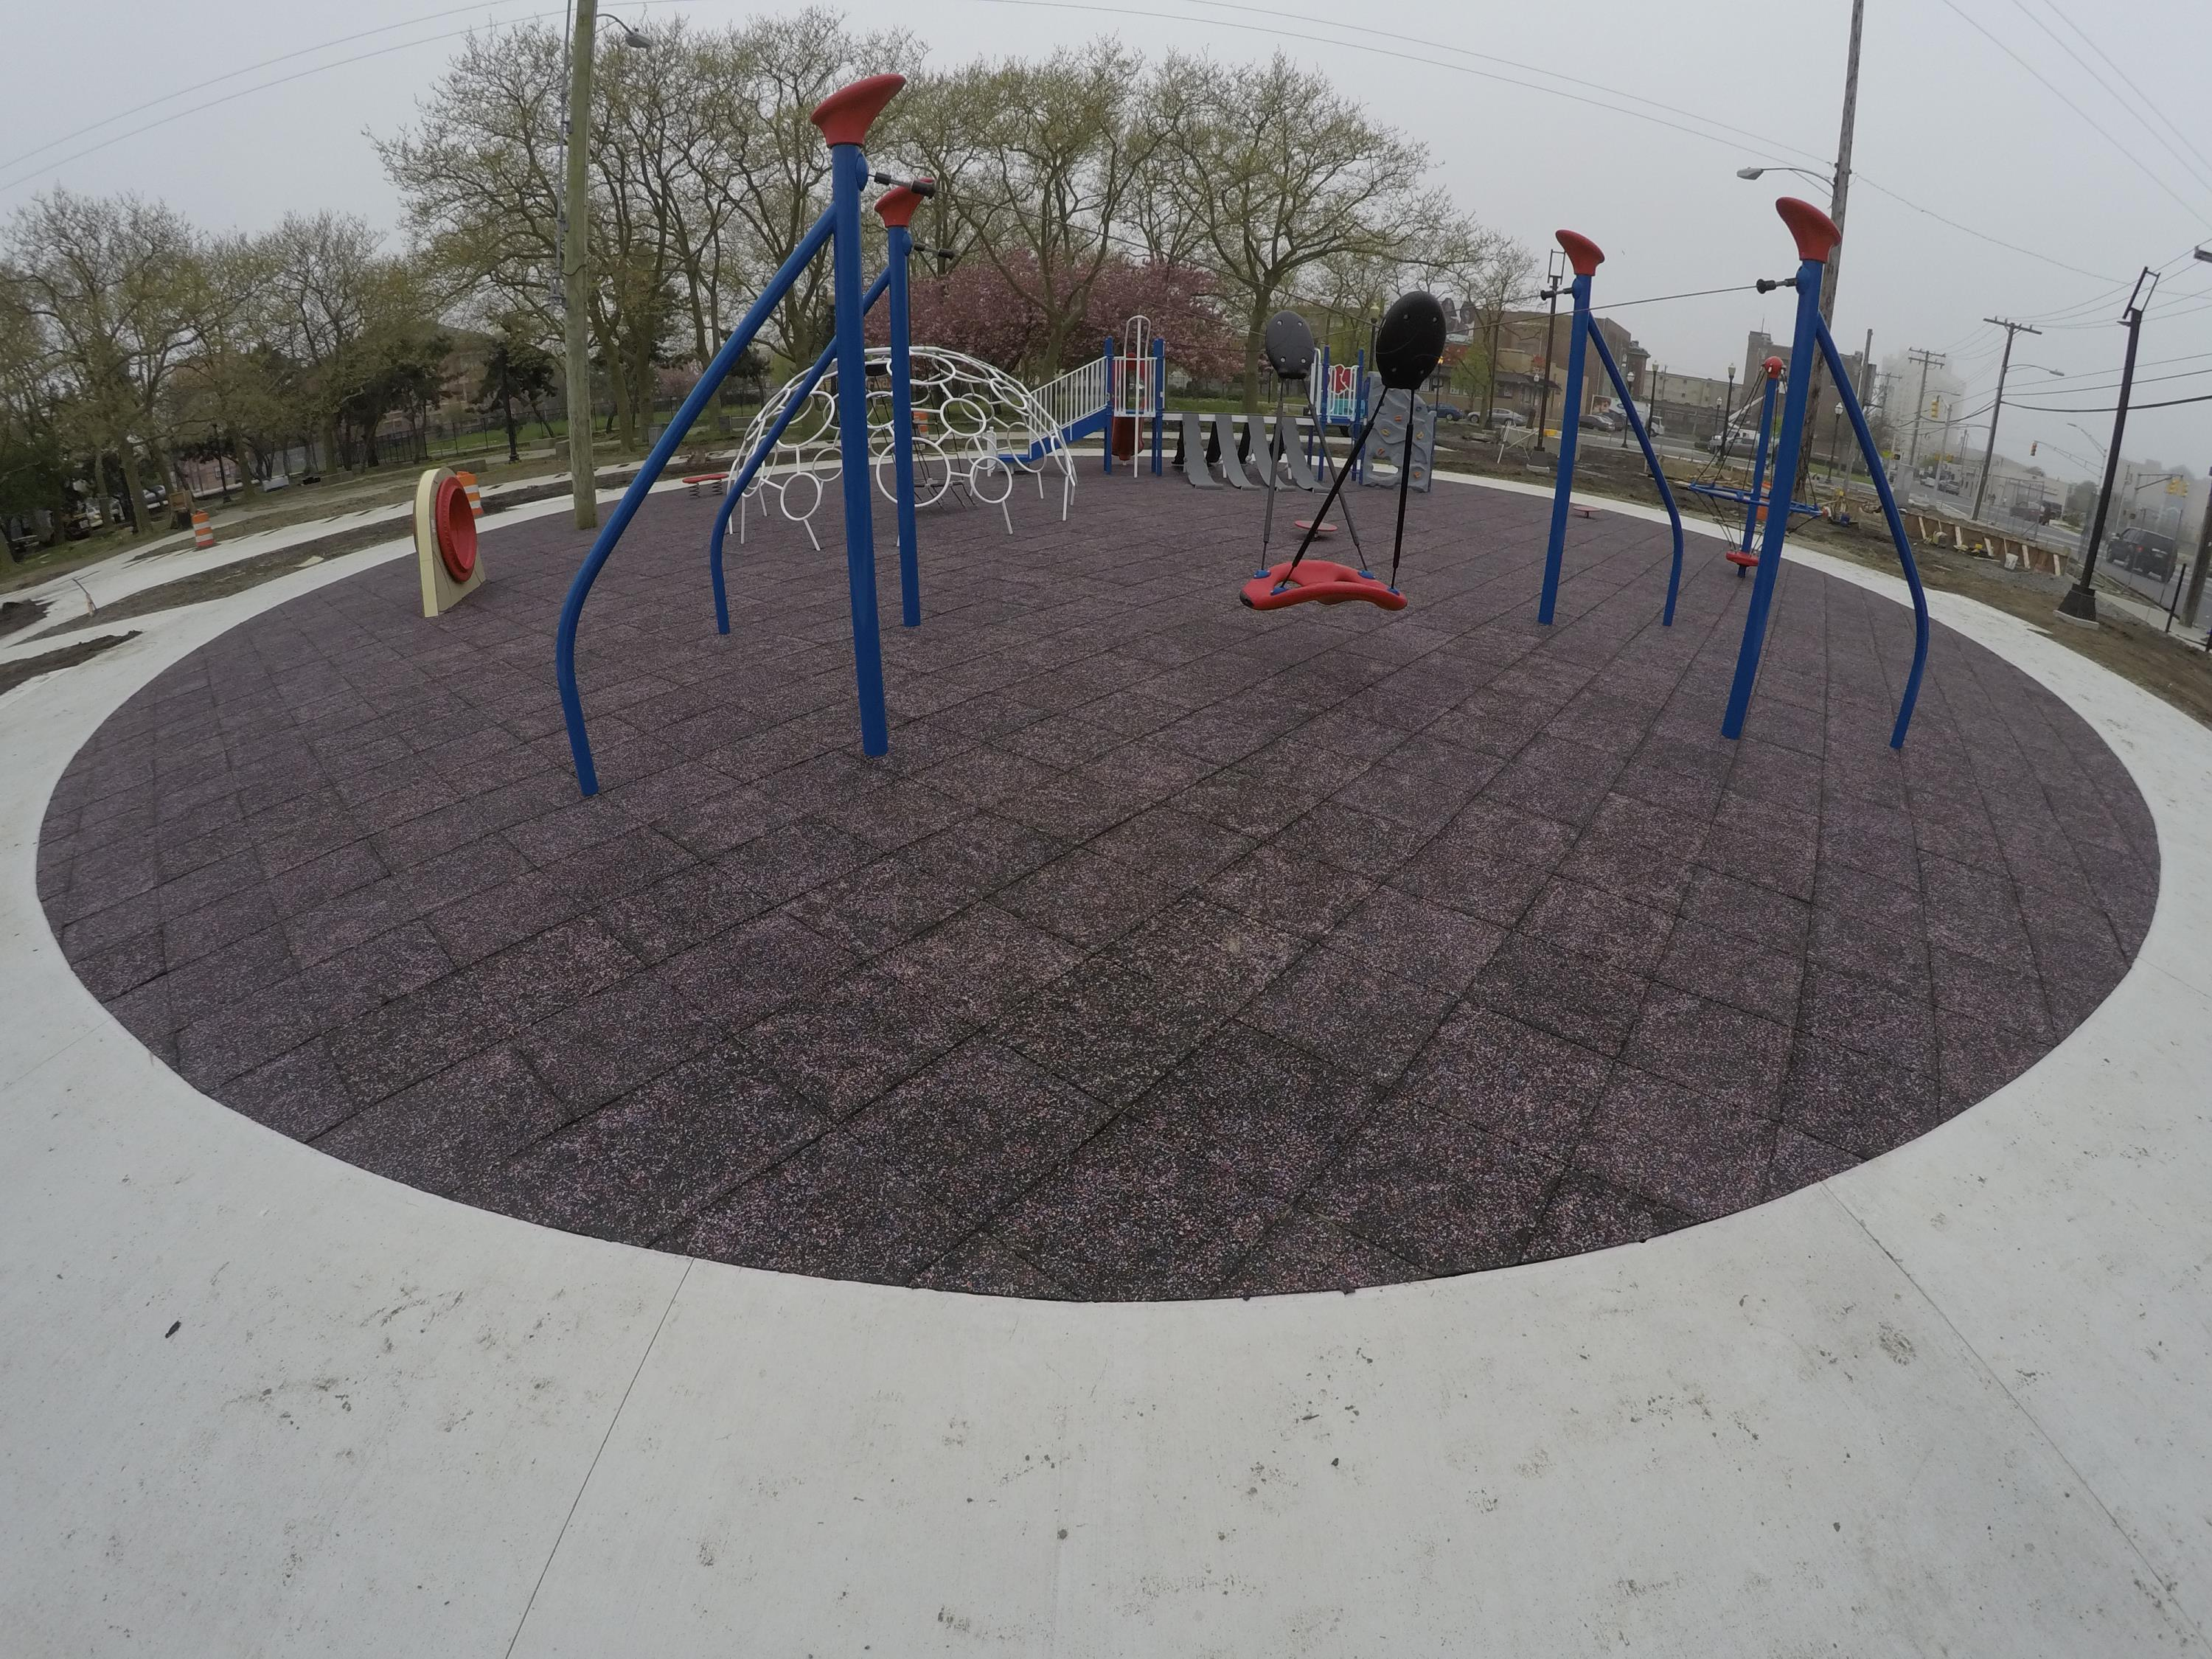 Interlocking Play Tiles in AC Park Playground Setting